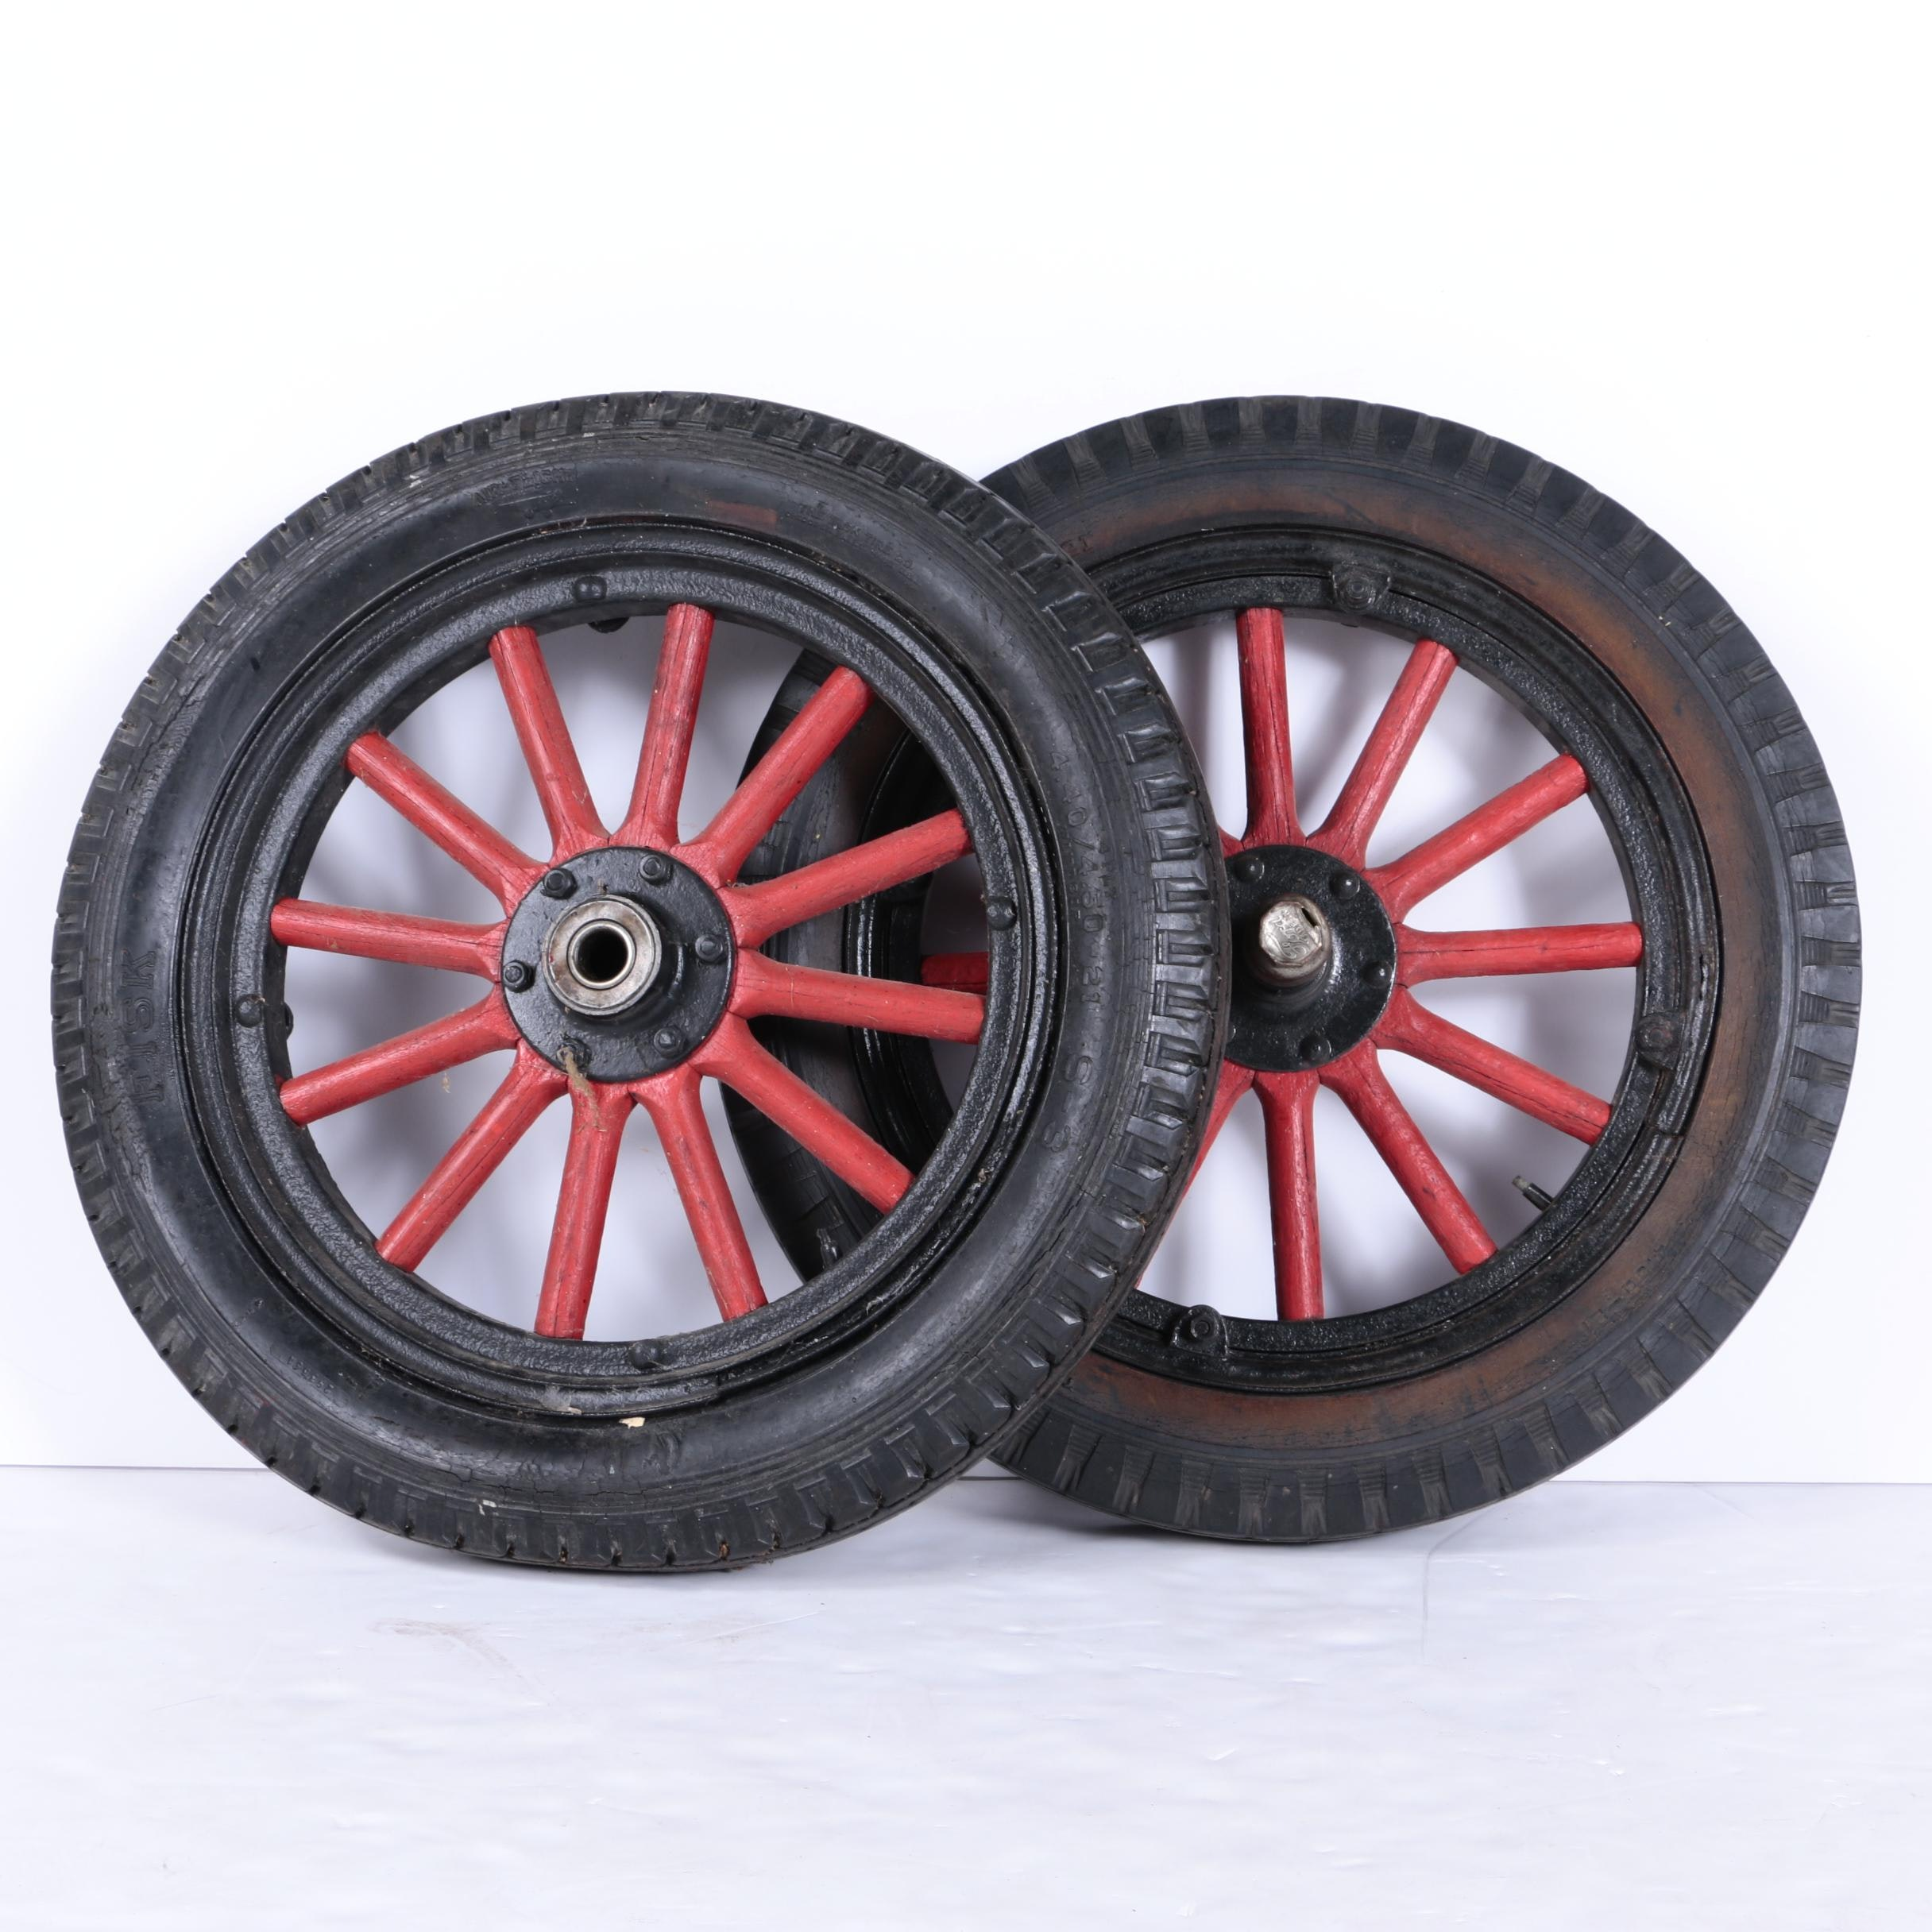 Pair of Vintage Wagon Tires and Wheels